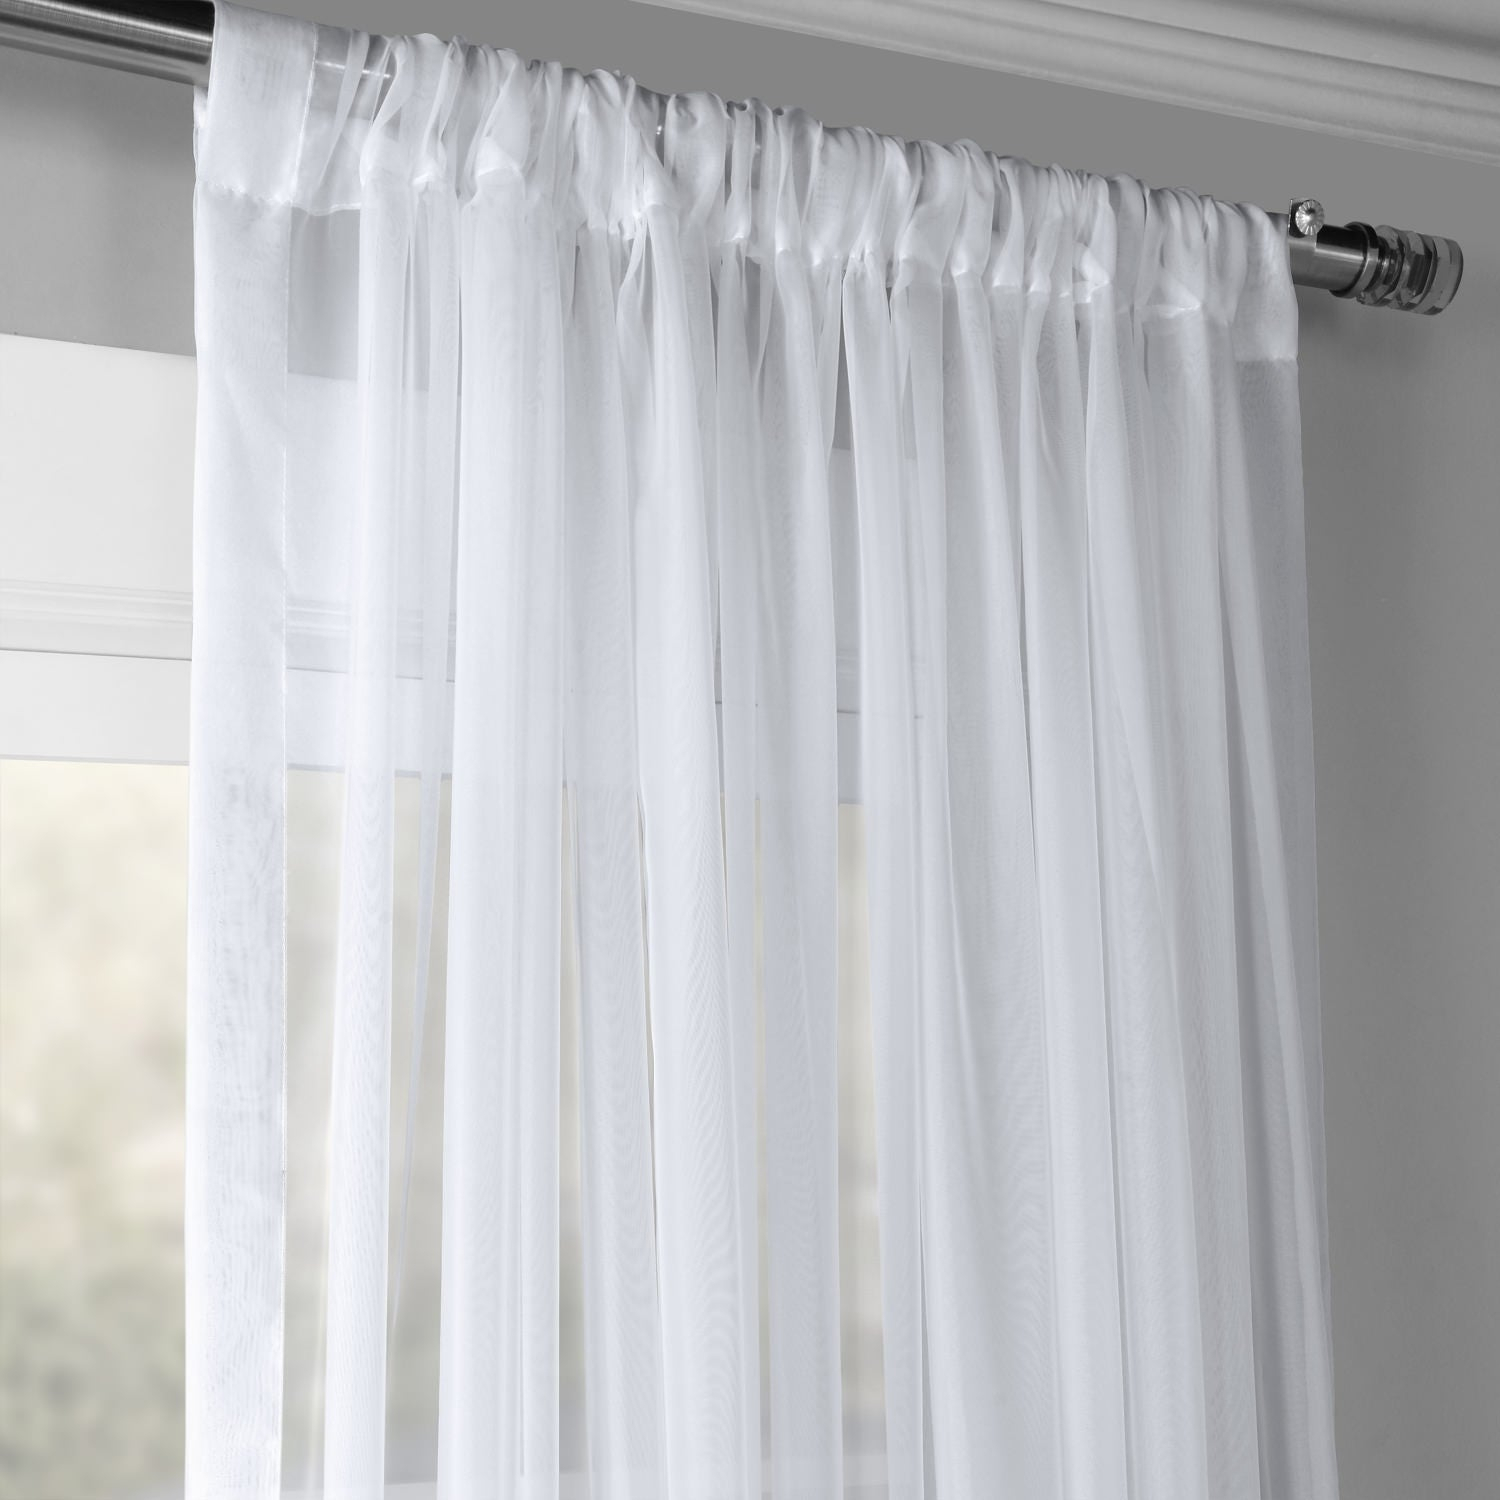 Exclusive Fabrics Extra Wide White Voile Sheer Curtain Panel In Extra Wide White Voile Sheer Curtain Panels (View 2 of 20)